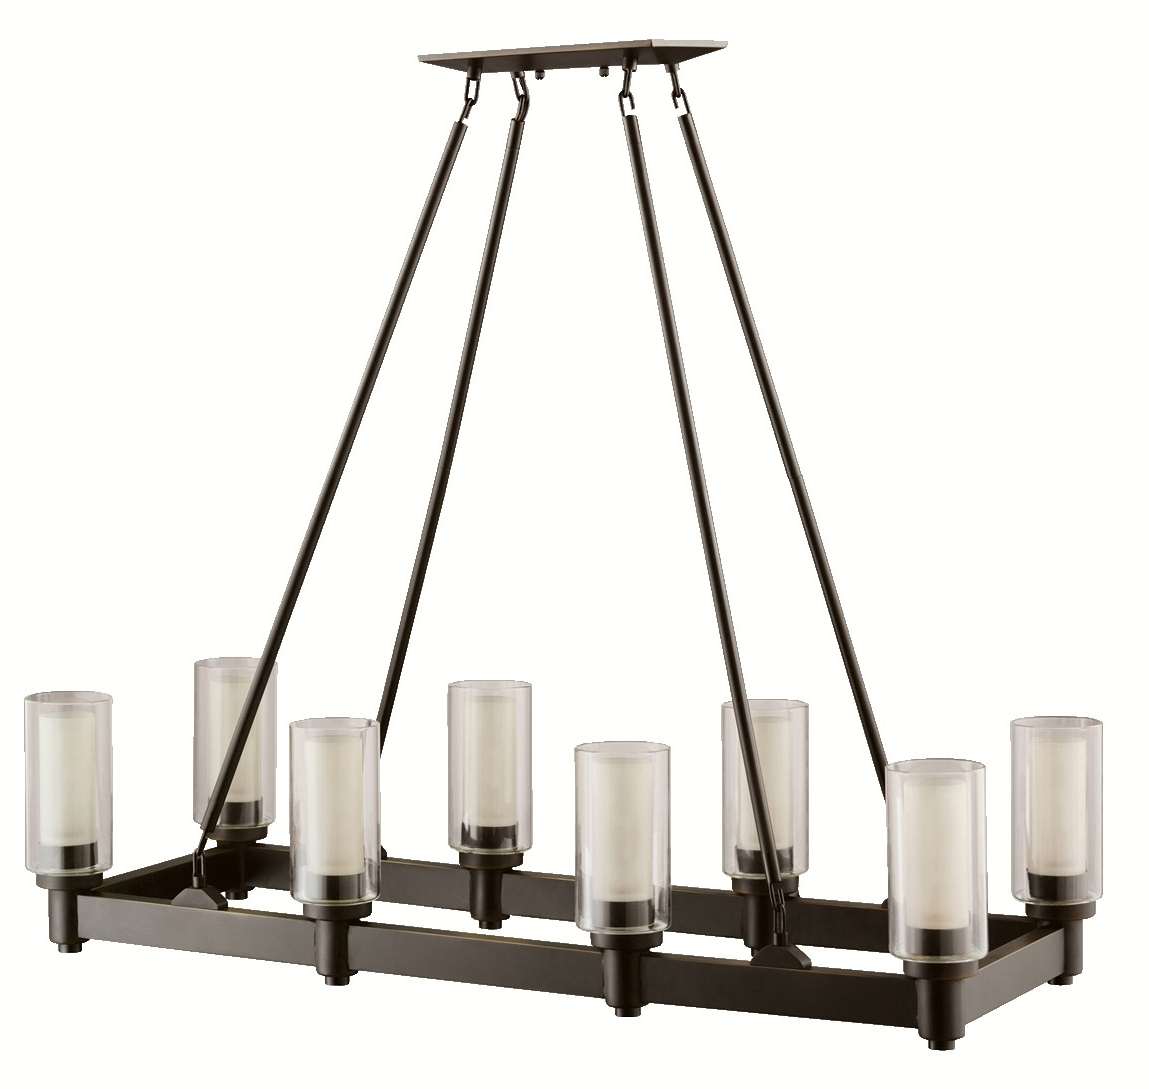 Black Iron Chandeliers For Widely Used Hand Forged Hanging Black Rectangular Iron Chandeliers With 8 Glass (View 10 of 15)